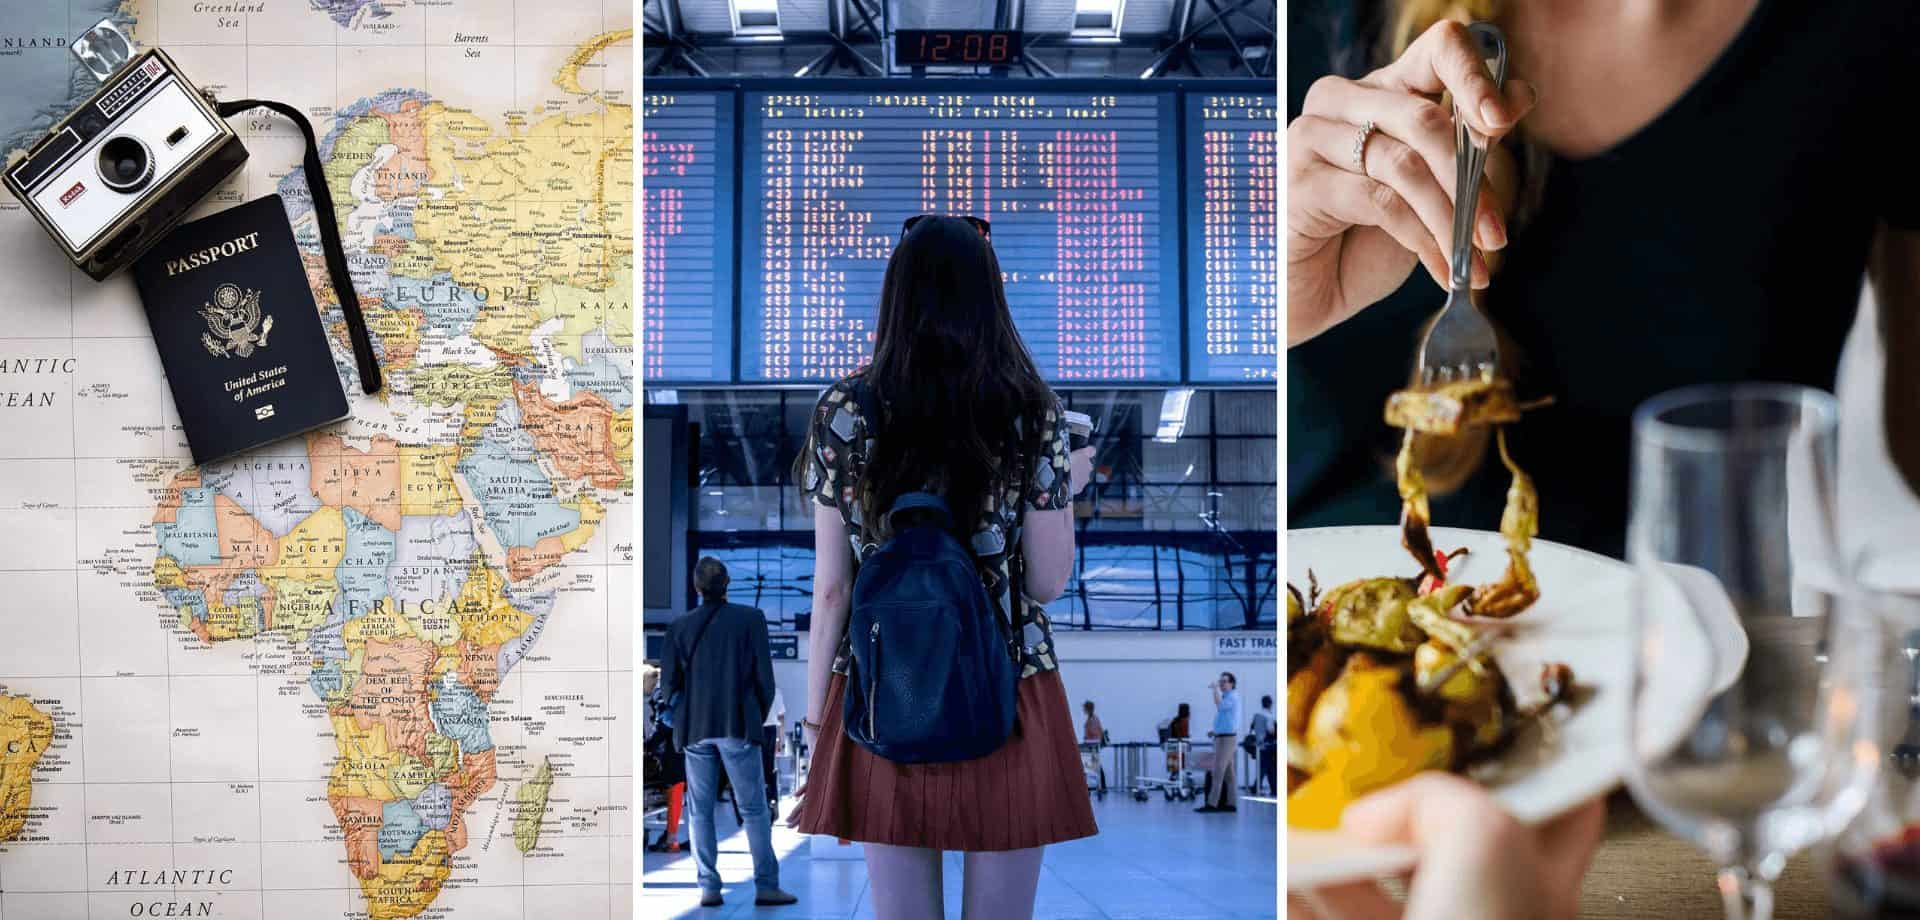 Traveling Alone For The First Time: 21 Pro Tips For Solo Travel Newbies